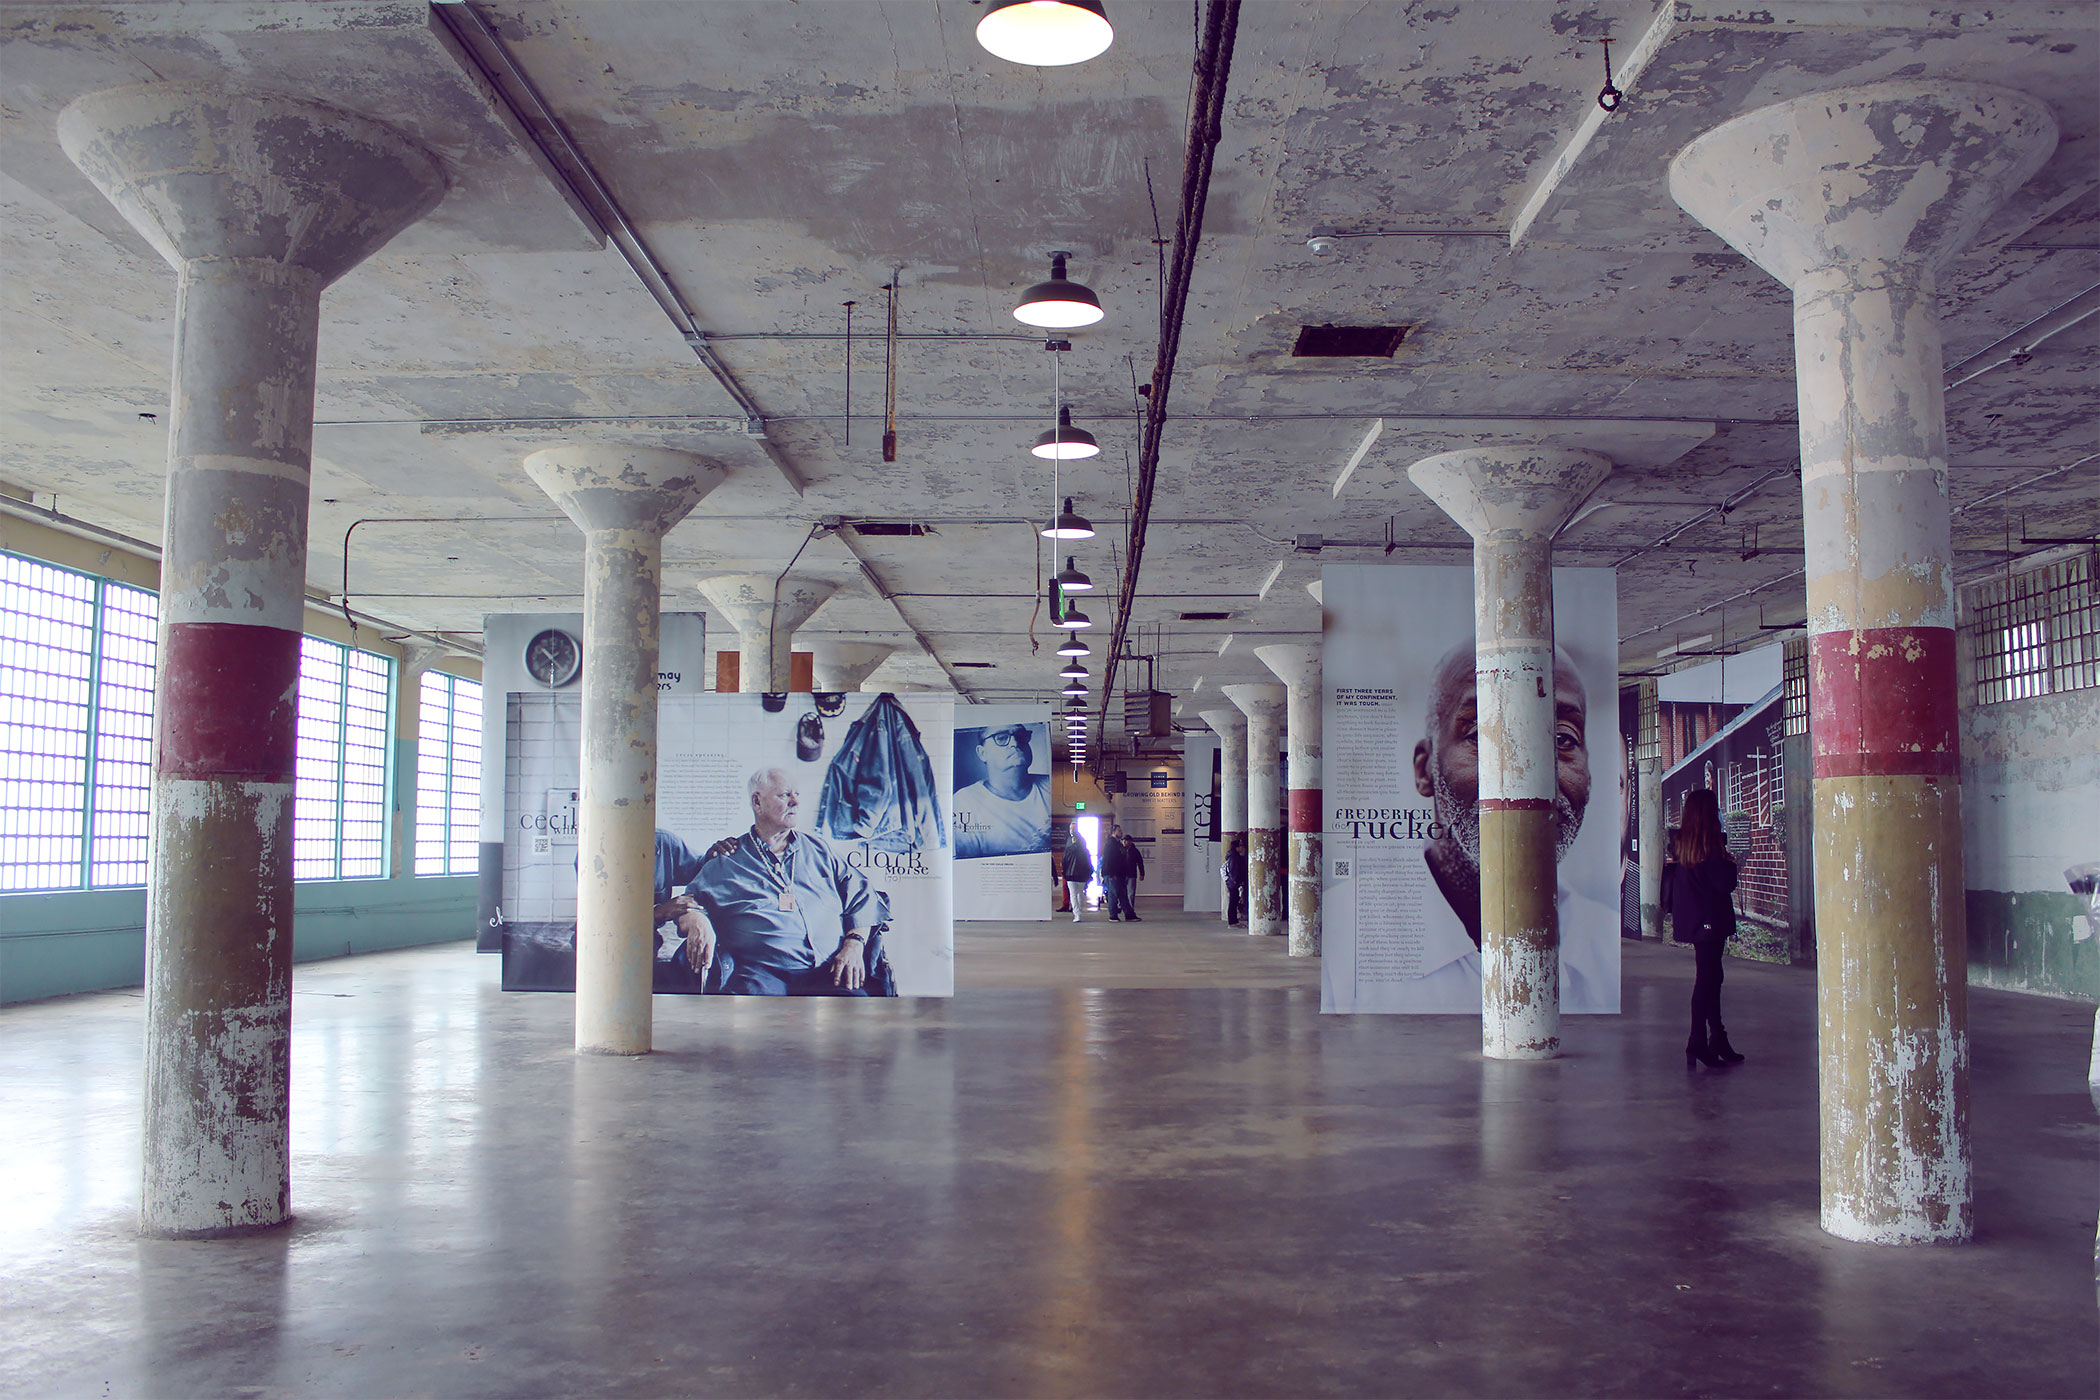 Prisoners of Age Exhibit at Alcatraz, San Francisco. Featuring photography by Ron Levine.